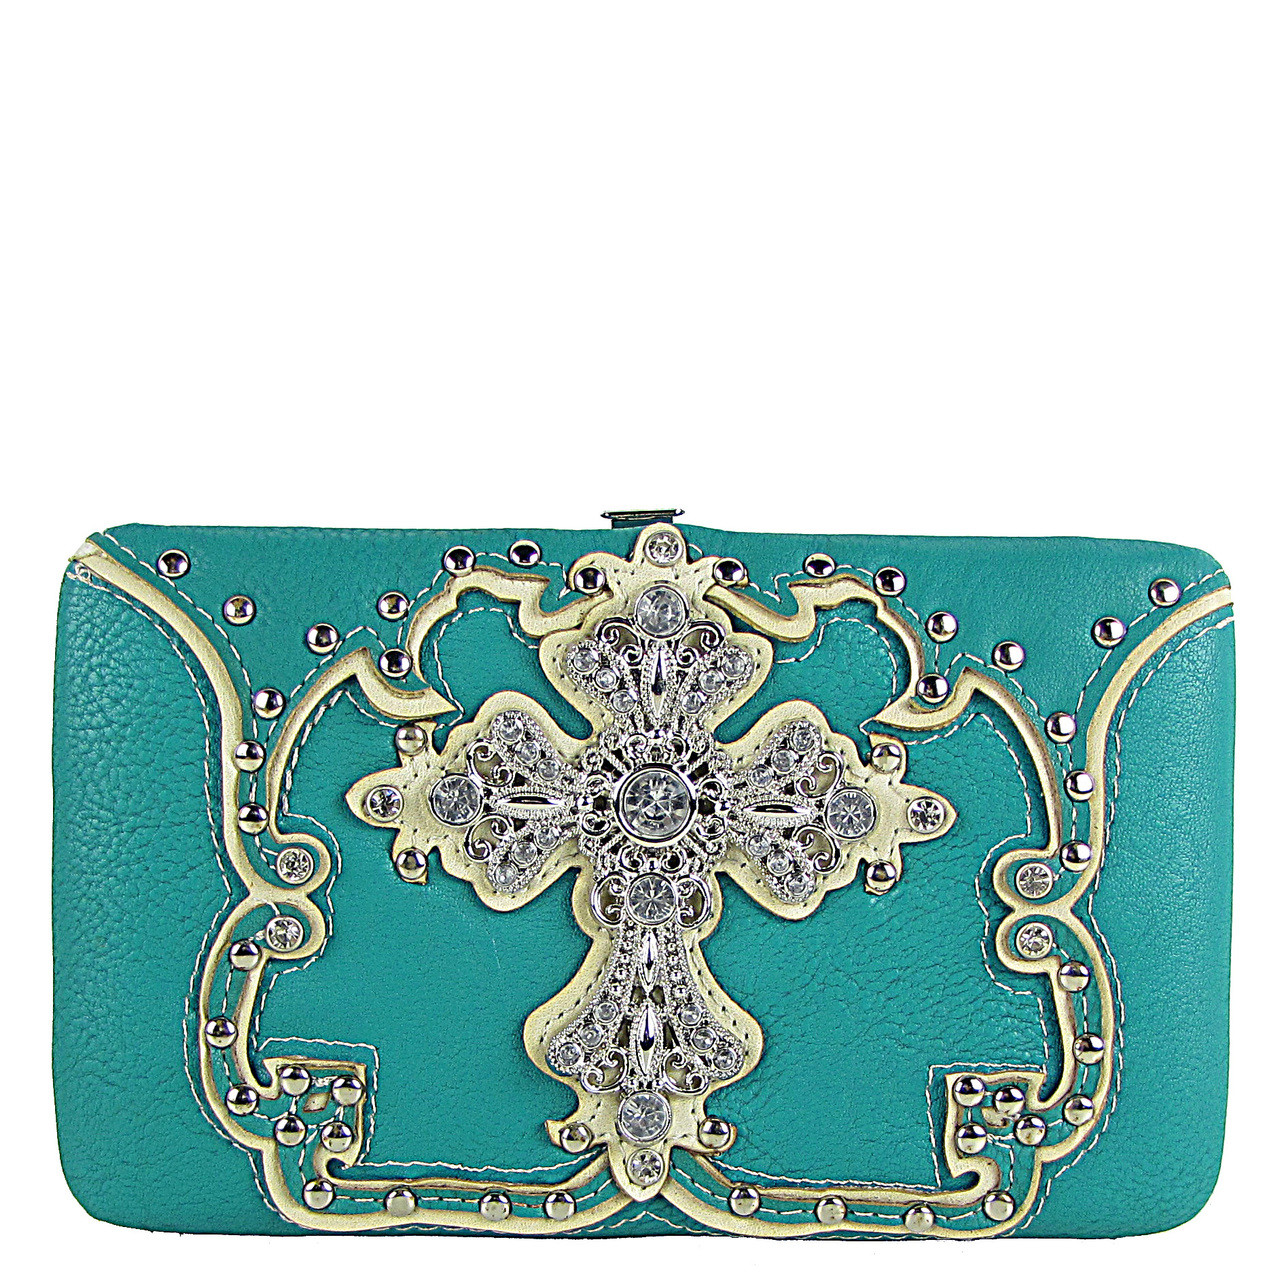 TURQUOISE STUDDED RHINESTONE CROSS LOOK FLAT THICK WALLET FW2-04124TRQ